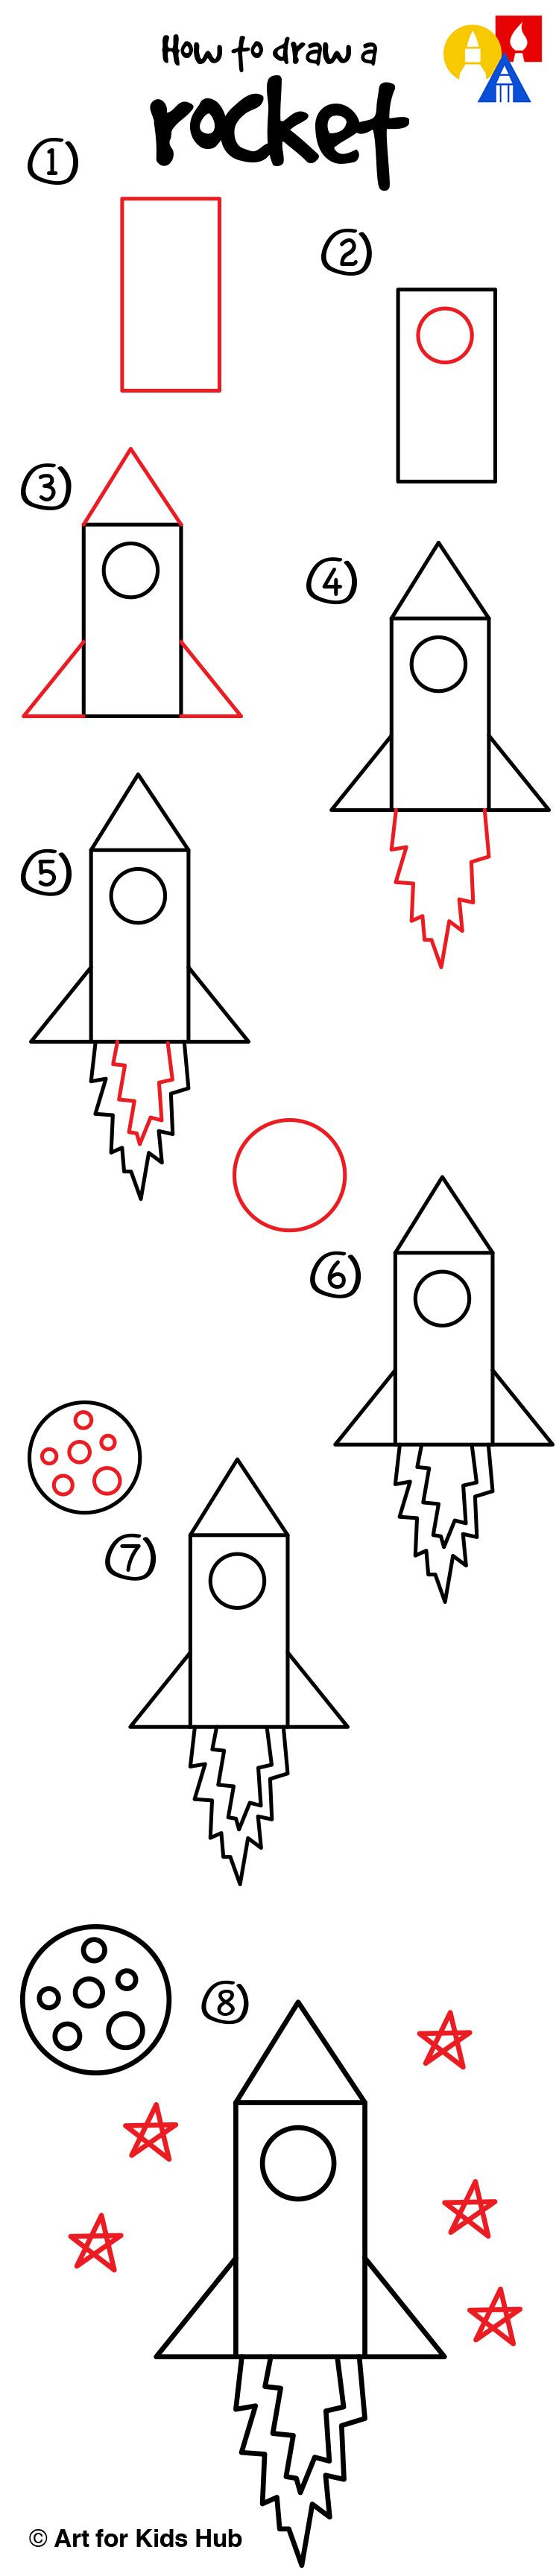 Uncategorized How To Draw A Rocket Ship Step By Step how to draw a rocket young artists art for kids hub hub